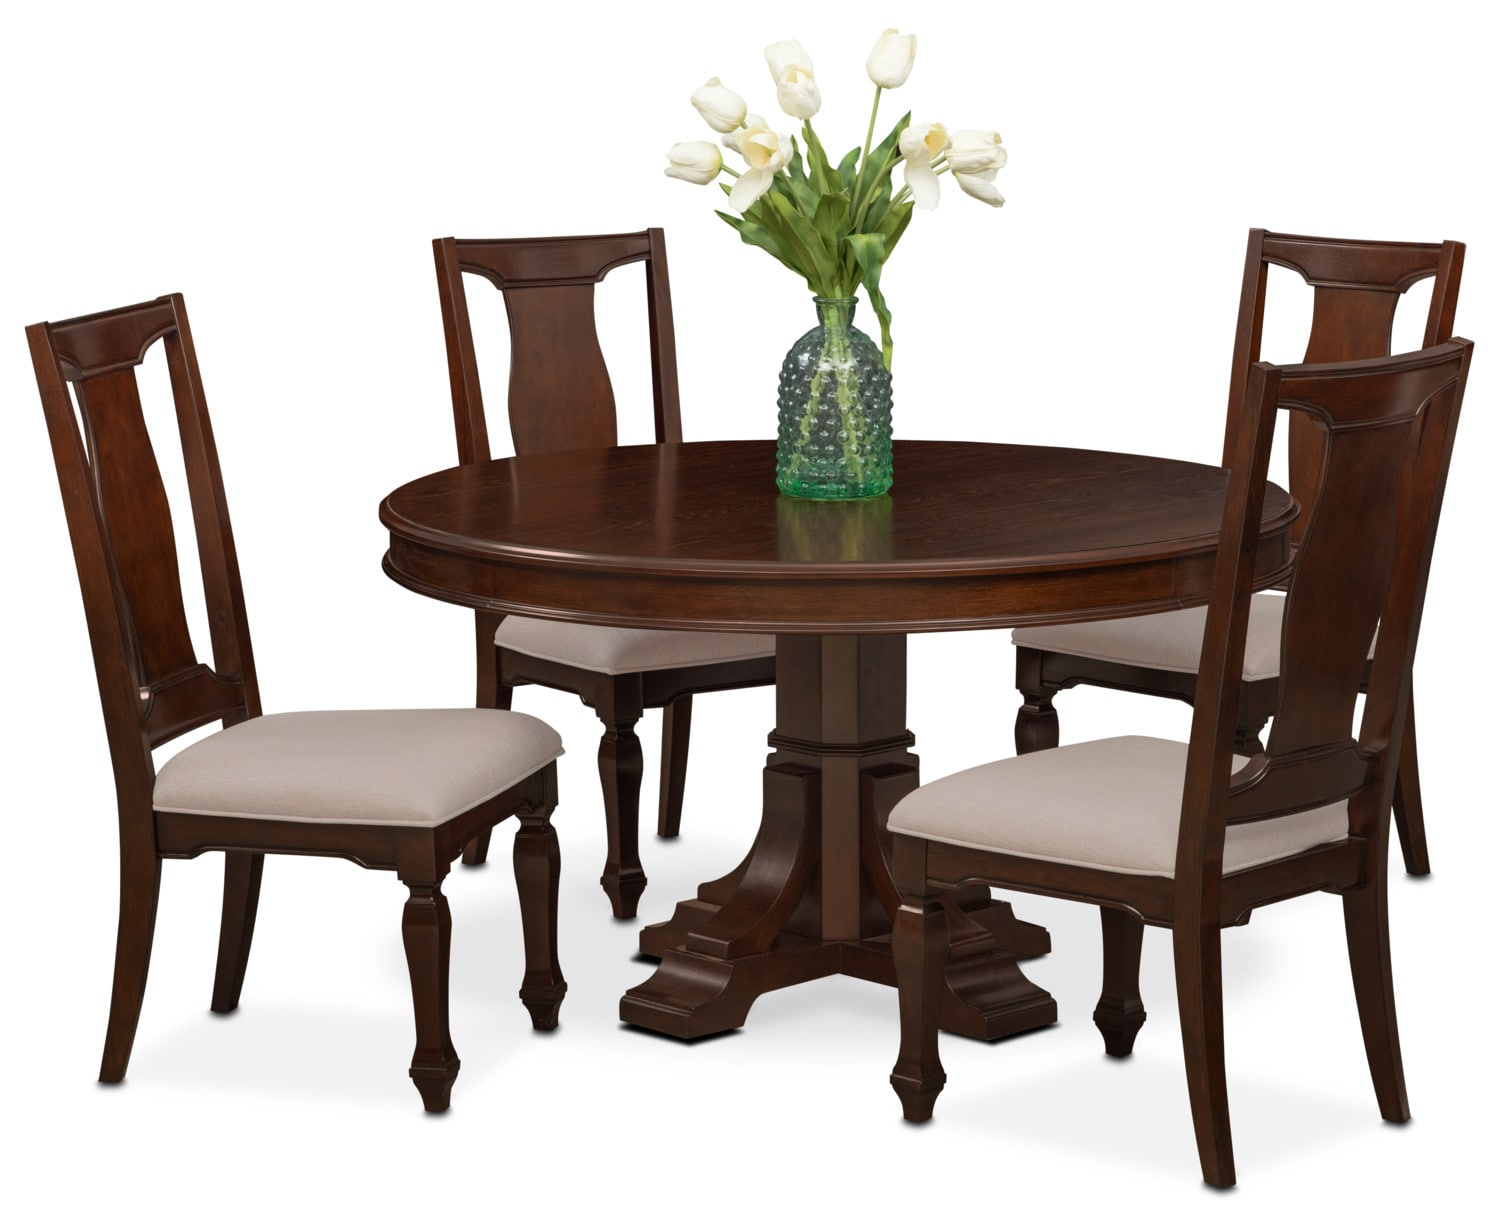 Vienna Round Dining Table And 4 Side Chairs   Merlot